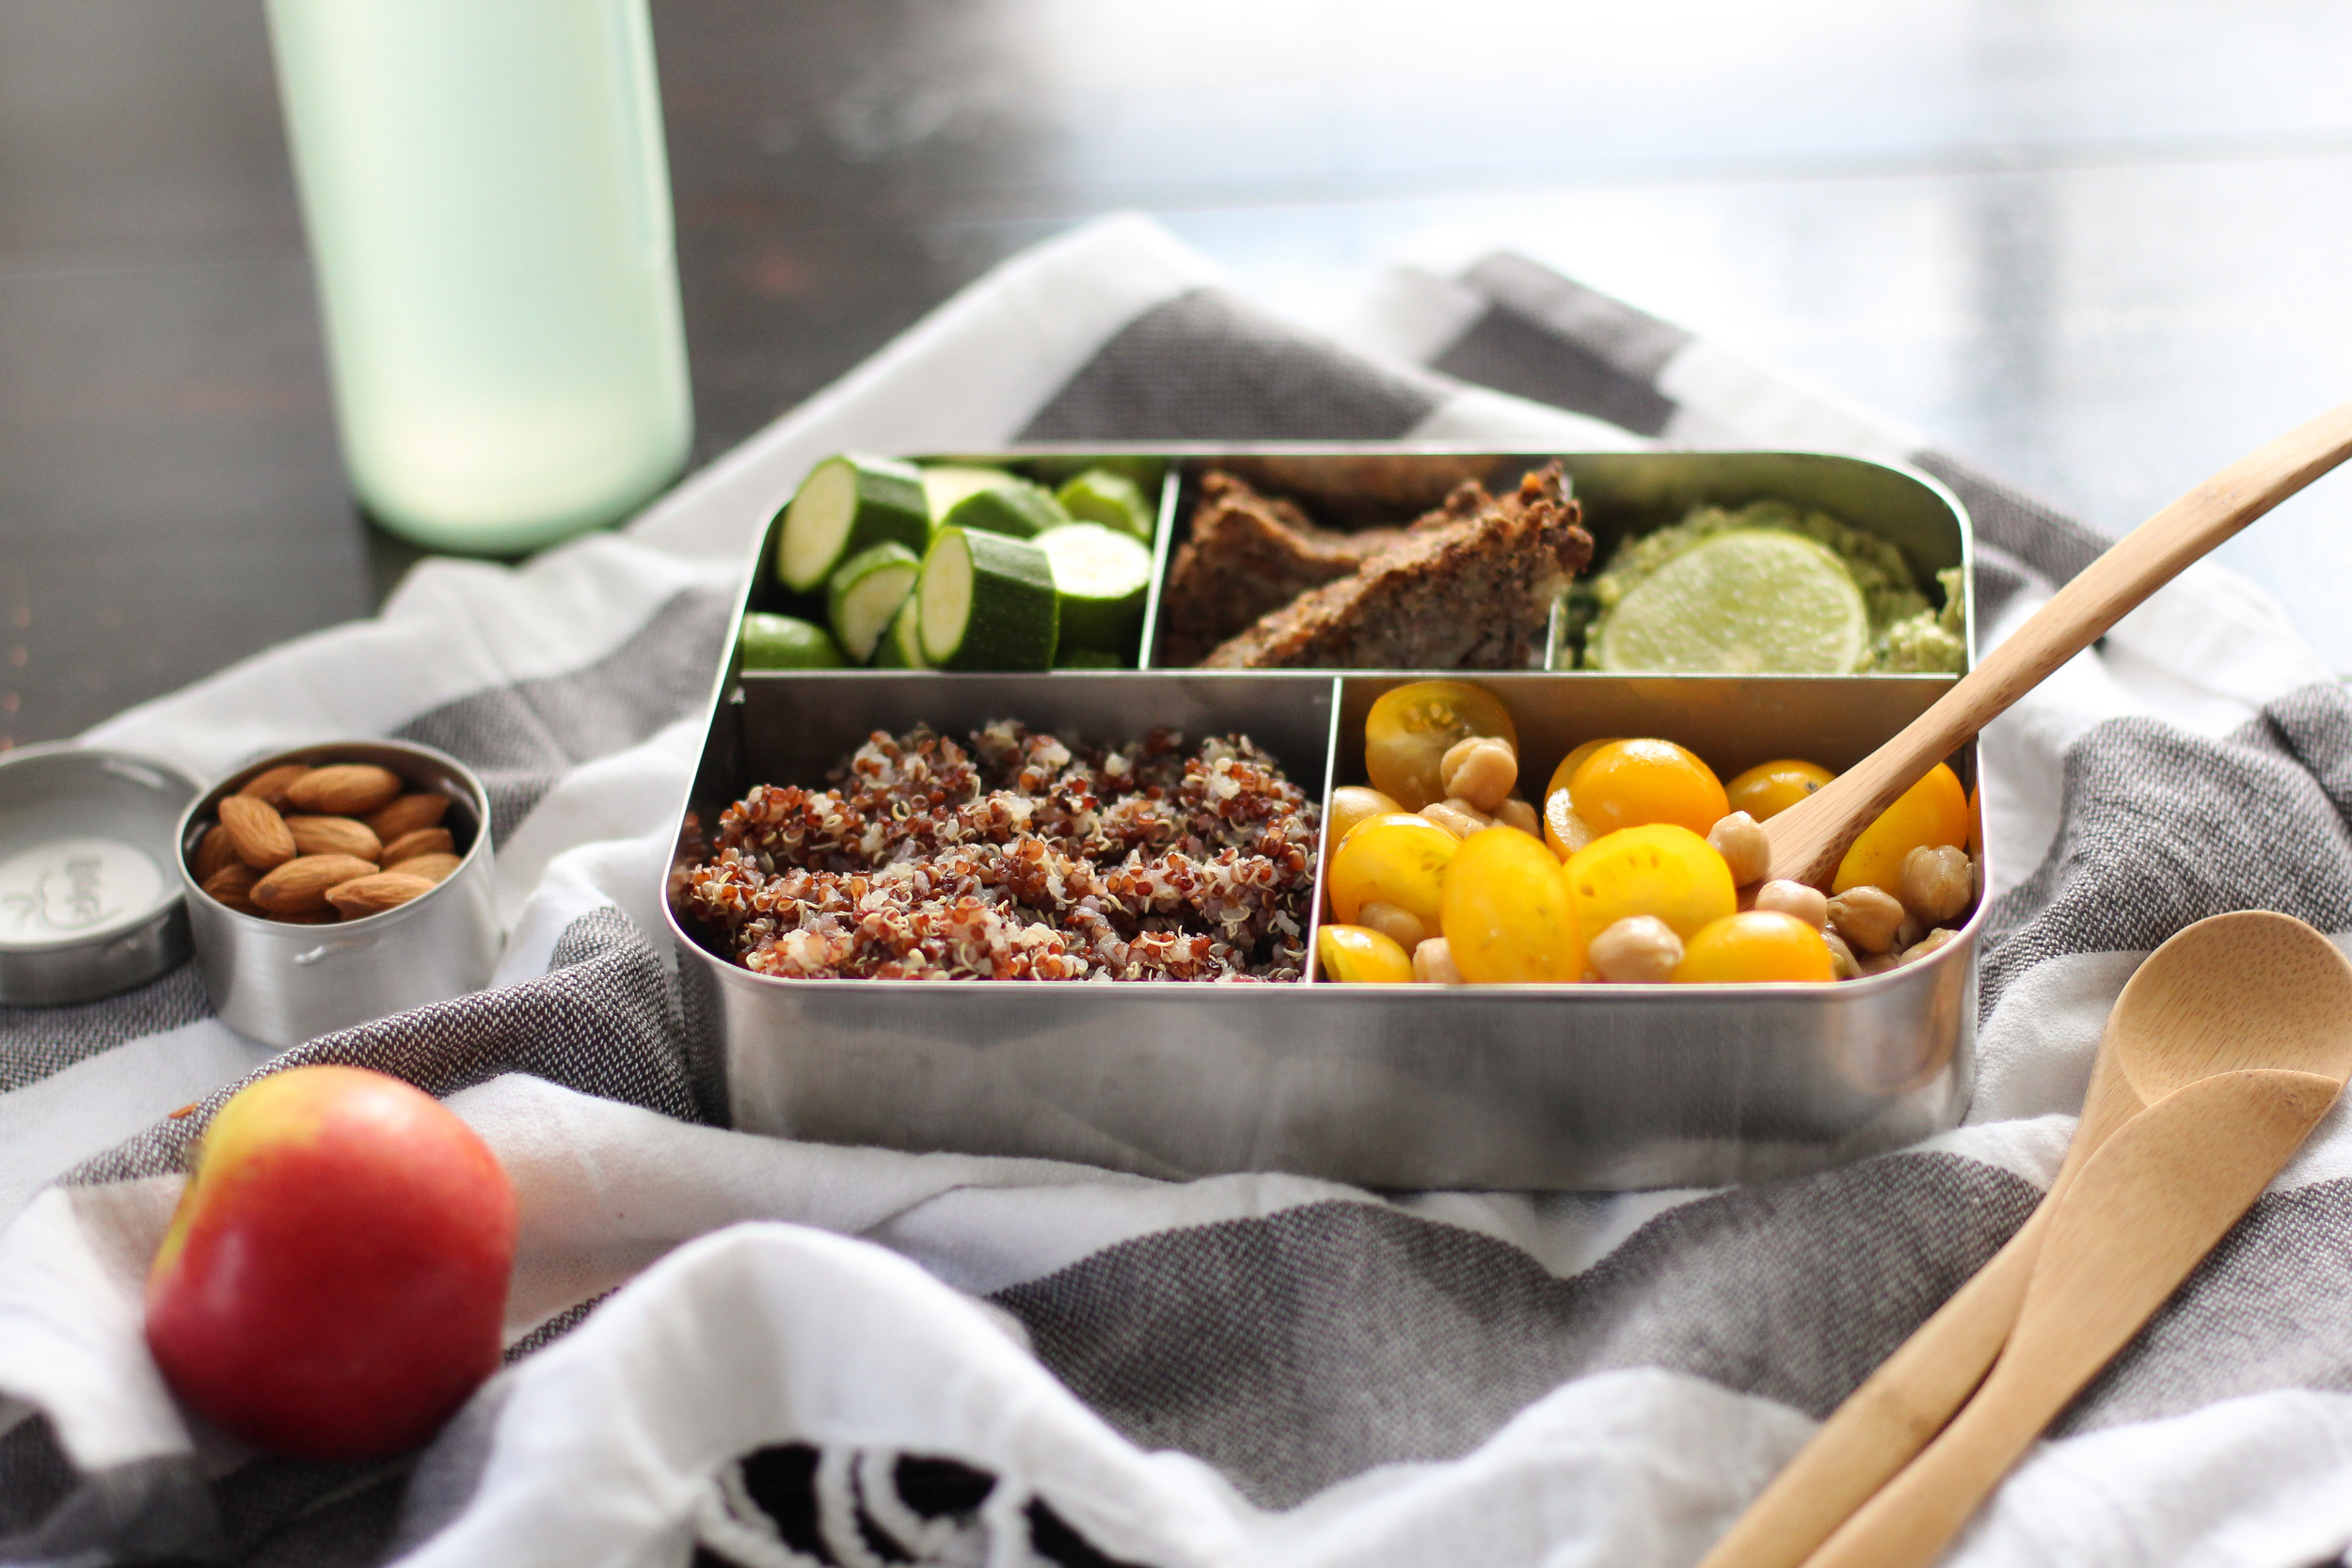 Click on the image to read Hardeep's strategies for packing lunch!  Photo credit: image source: http://nutritionstripped.com/how-to-build-a-healthy-lunch-box/